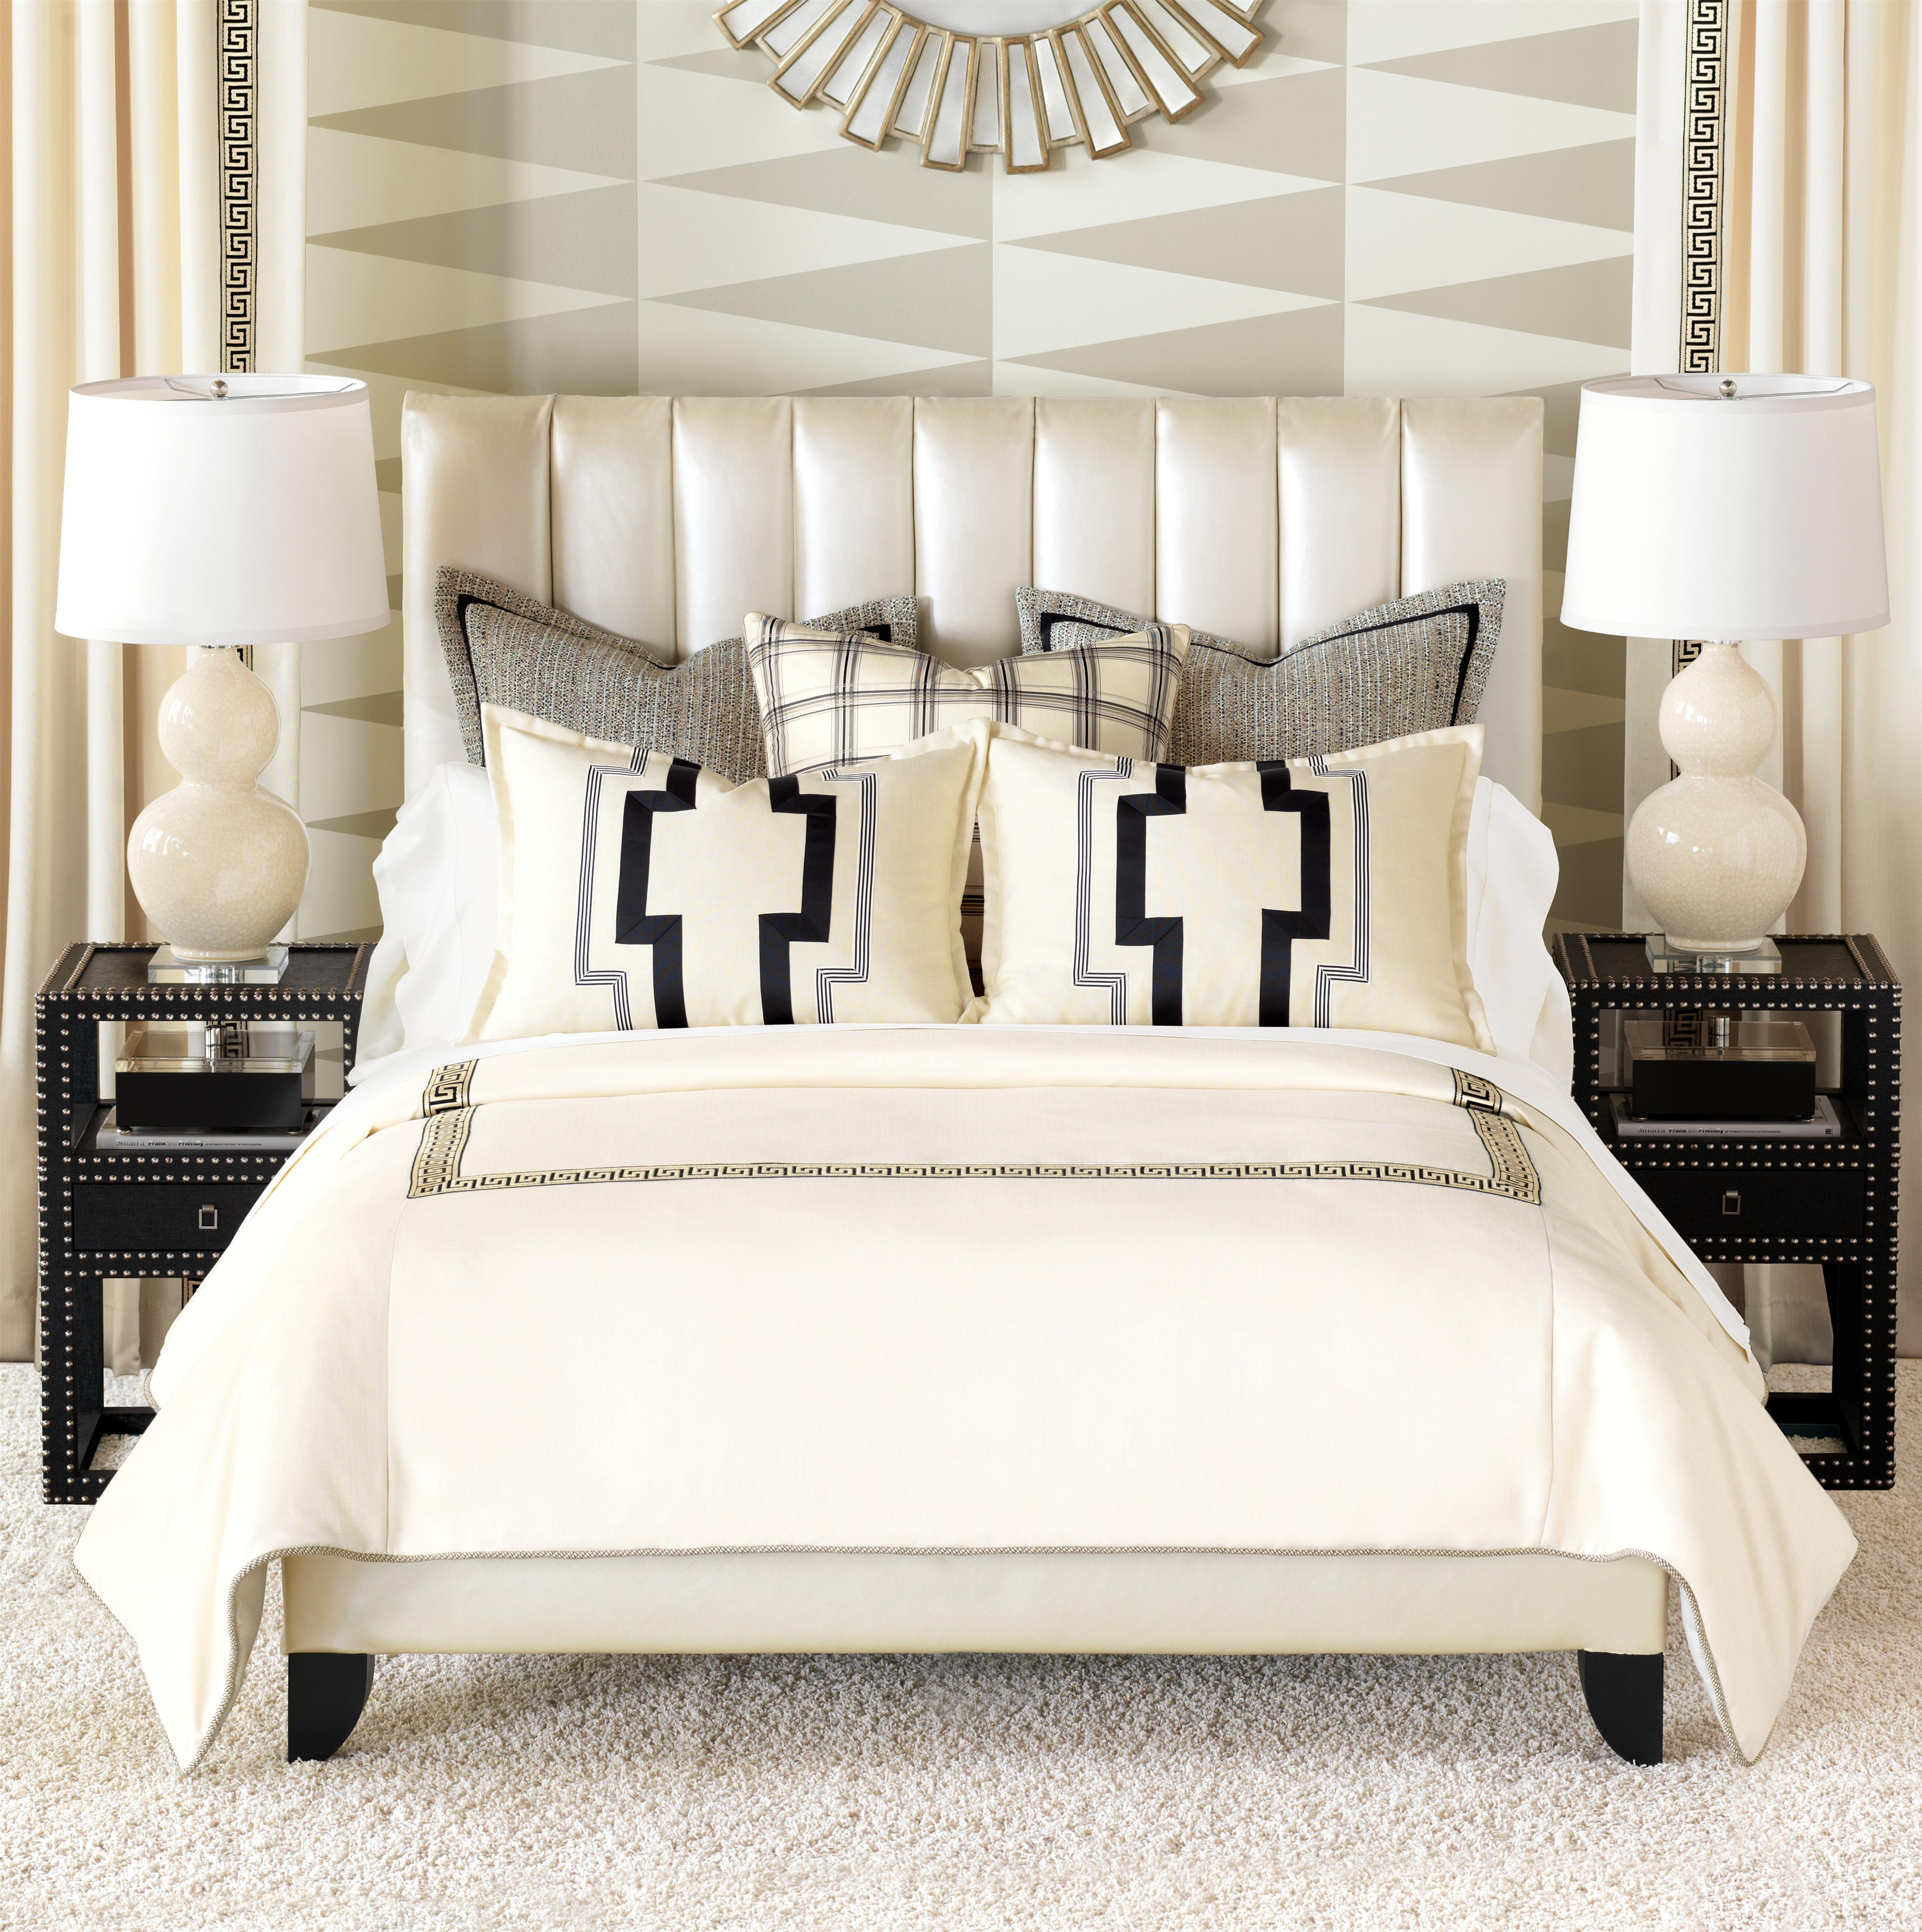 Abernathy Cal King Duvet Cover by Eastern Accents at Michael Alan Furniture & Design